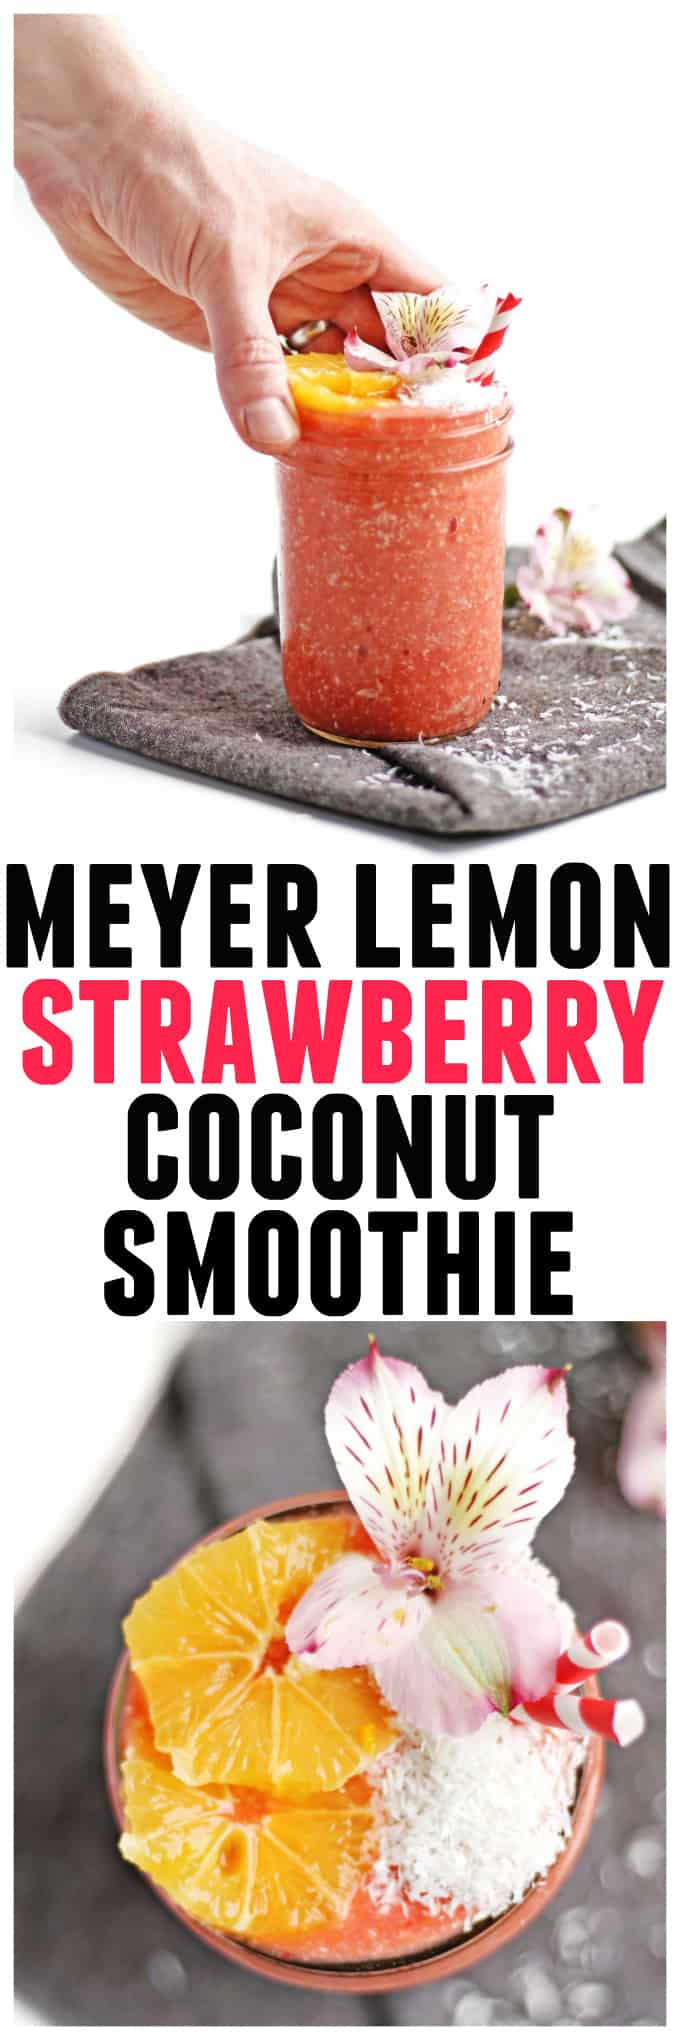 The perfect spring time smoothie! This tropical, refreshing meyer lemon strawberry smoothie with coconut includes an entire meyer lemon. A no waste recipe! Vegan, gluten free, clean eating, sugar free, dairy free, amazing. // Rhubarbarians